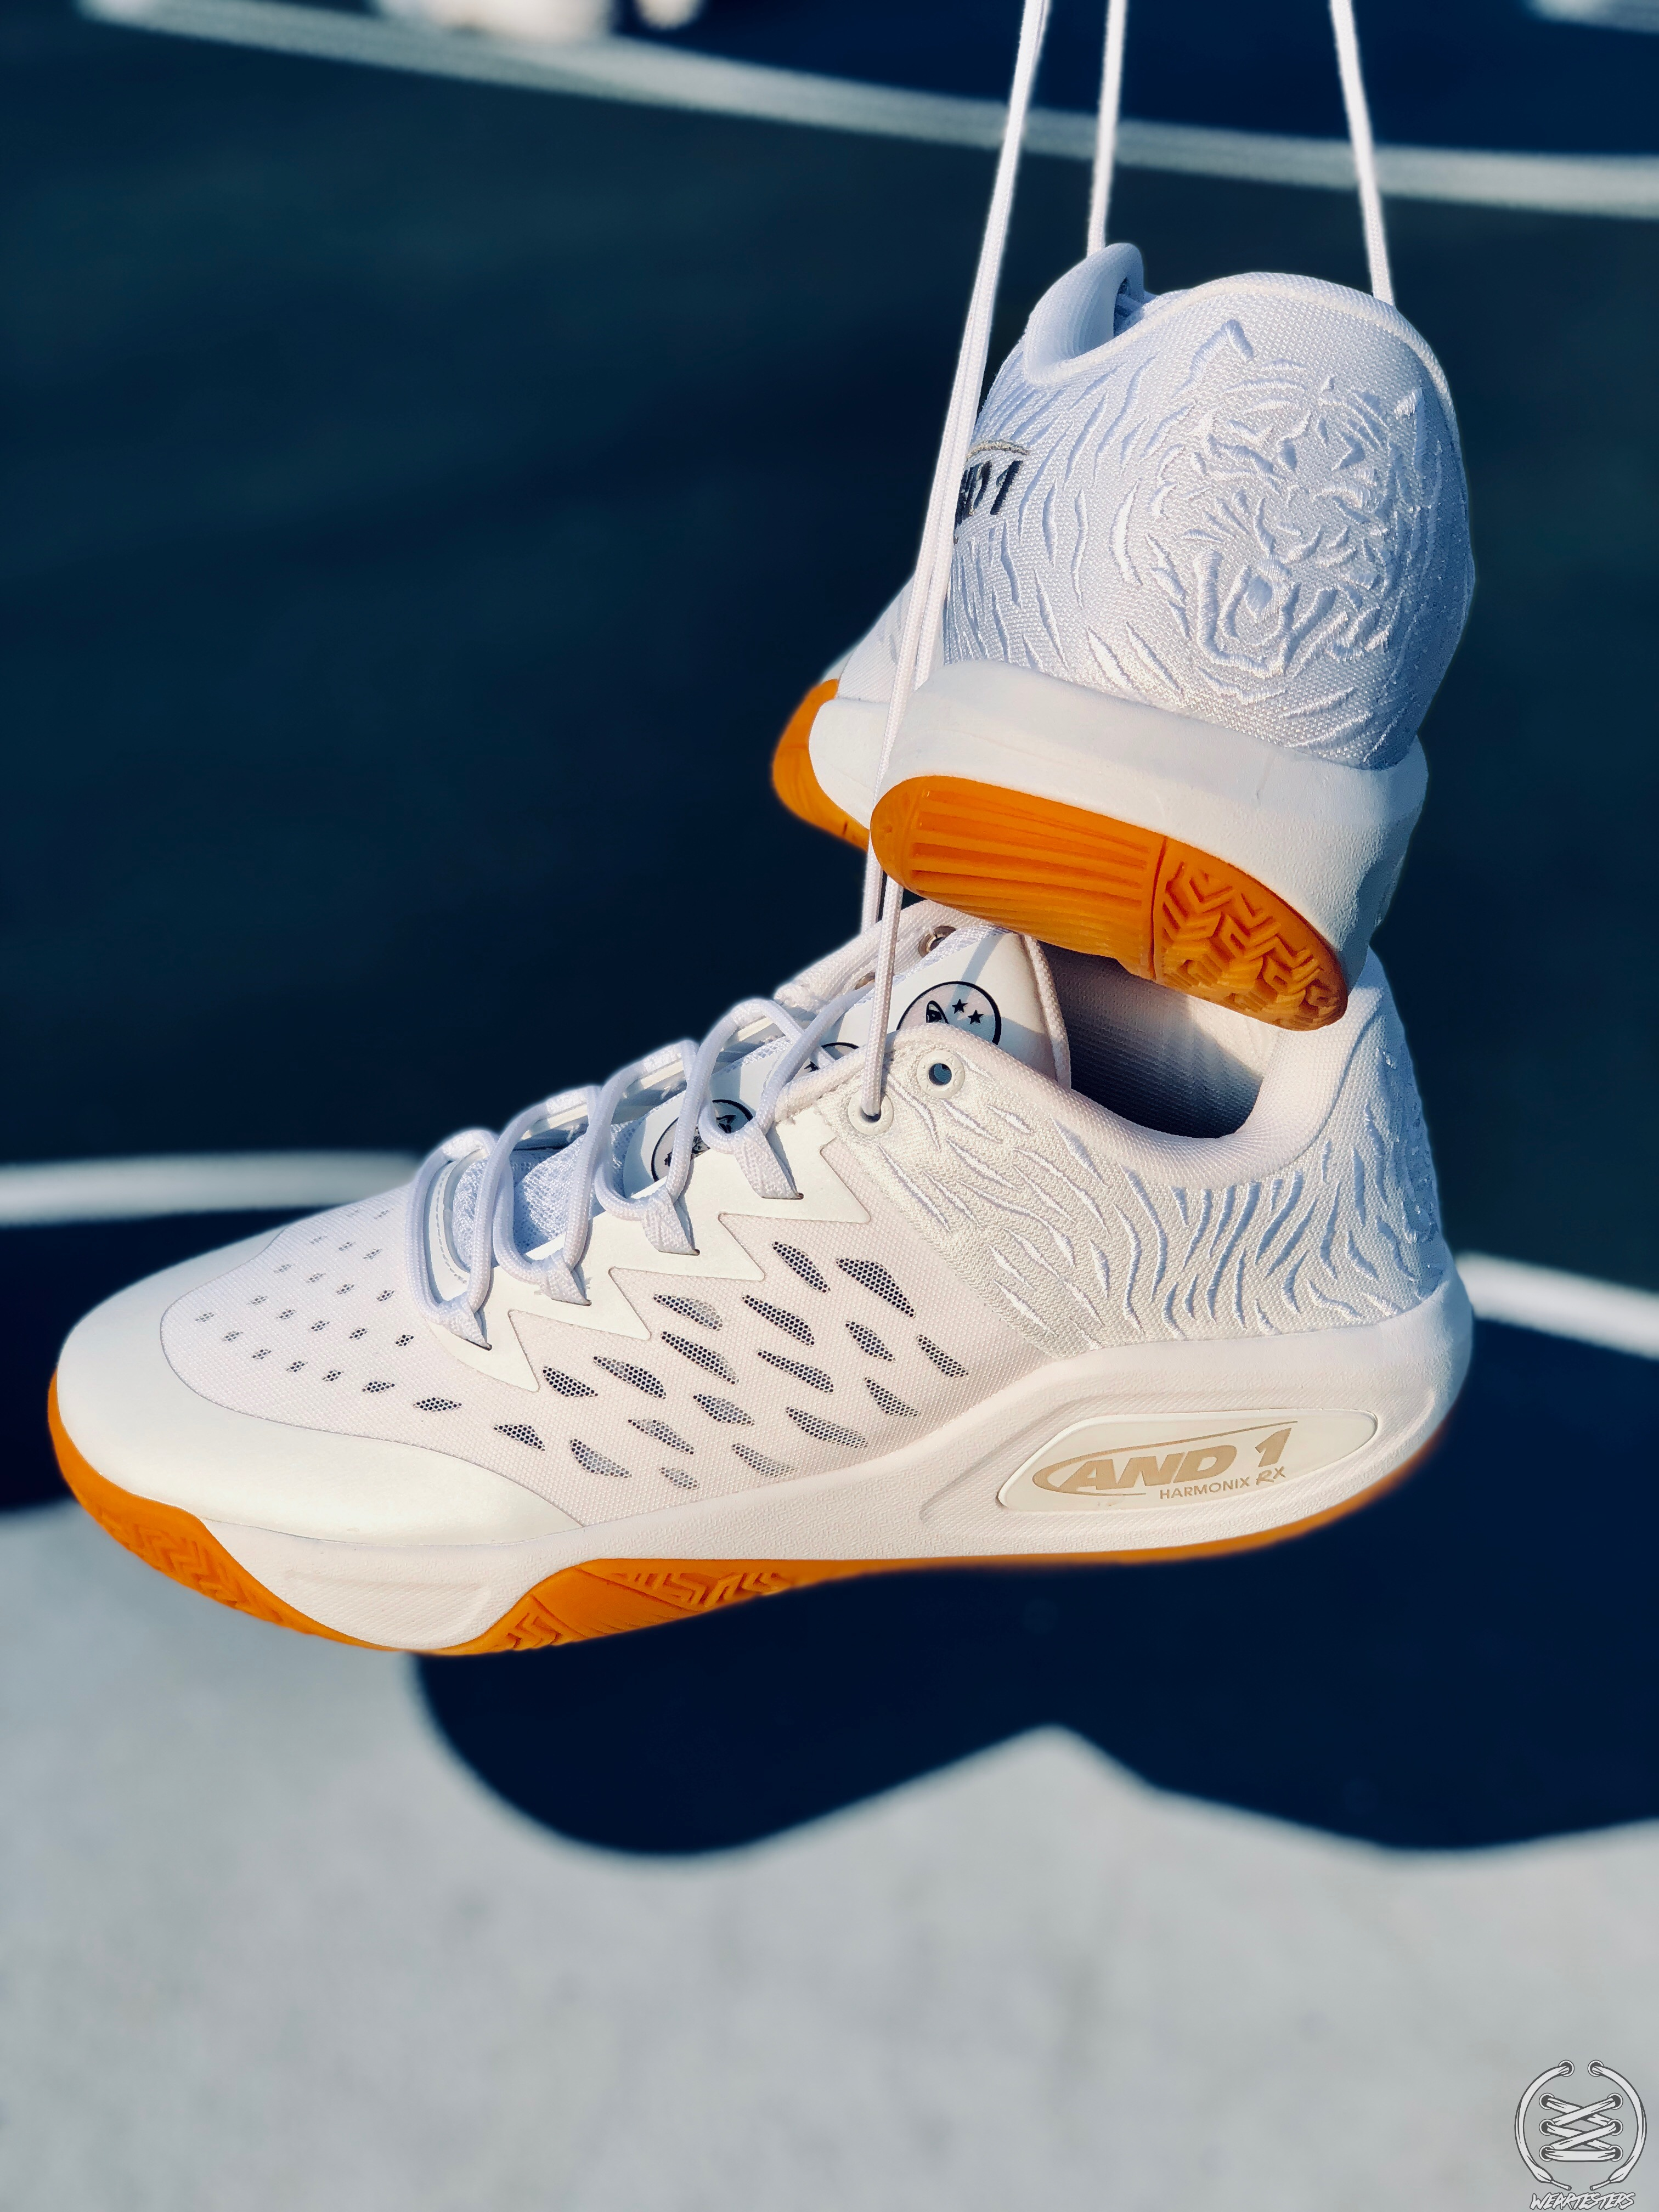 AND1 Attack Low 11